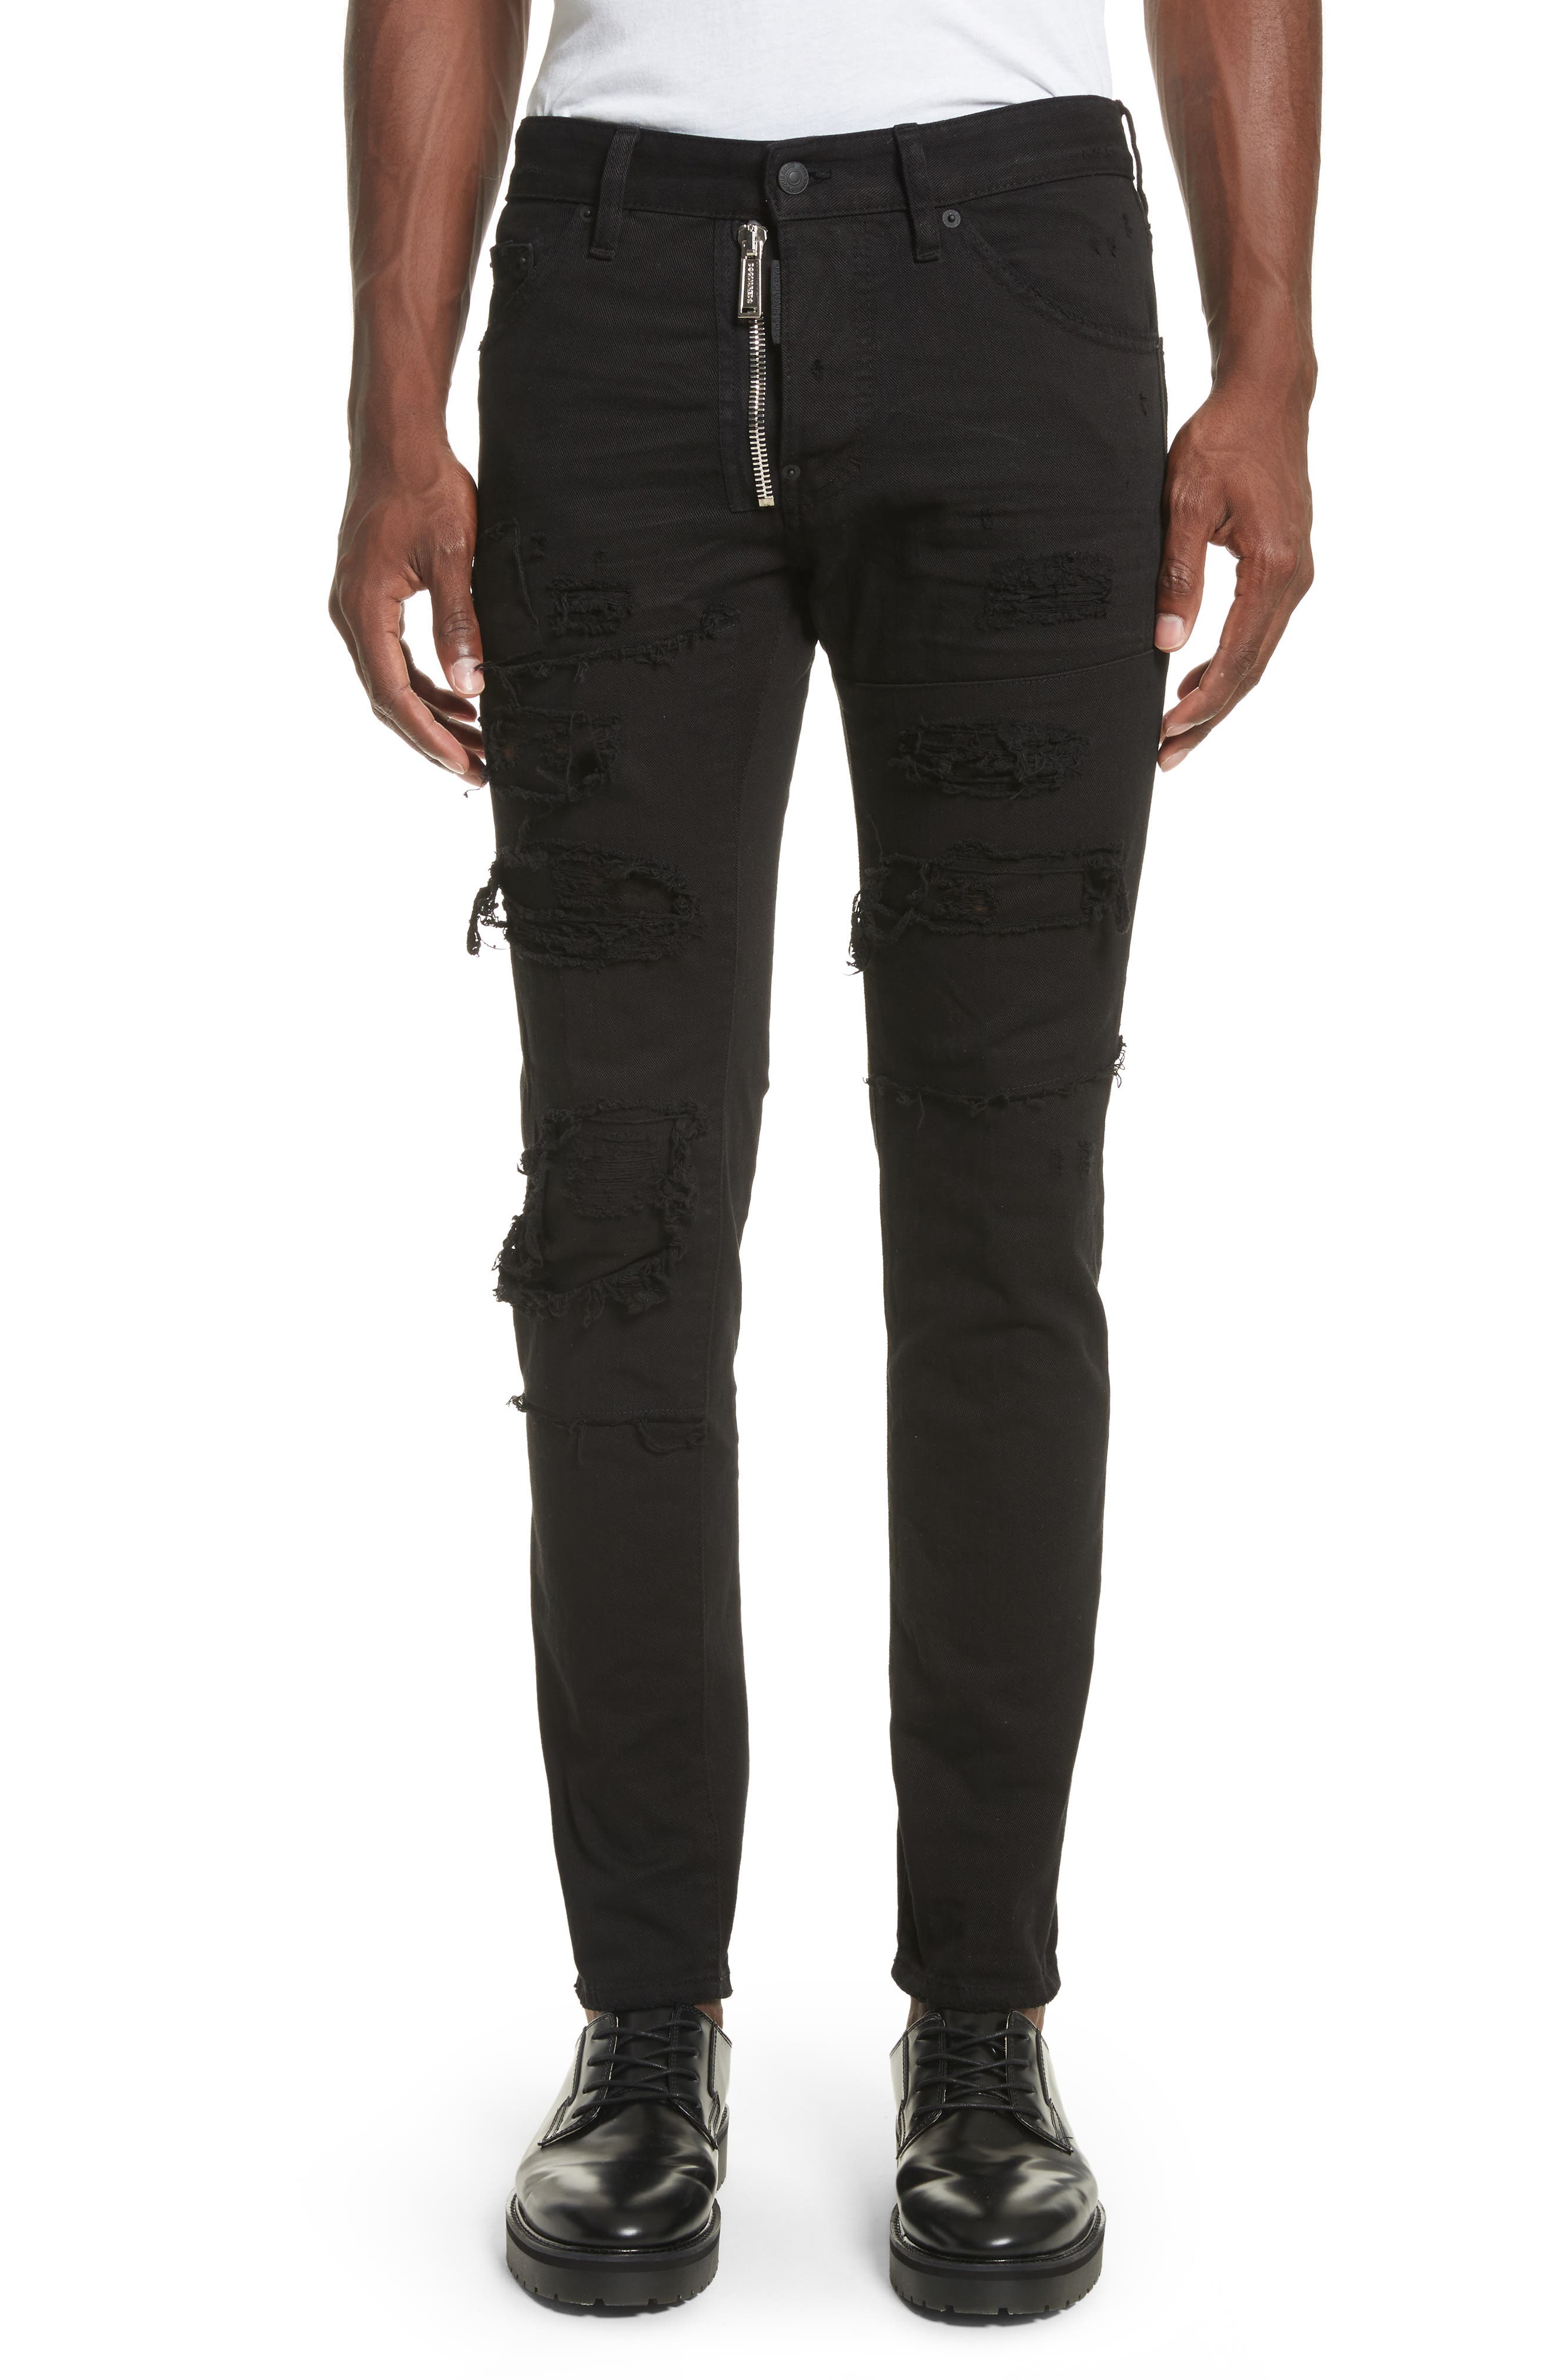 Ripped Washed Cool Guy Jeans,                         Main,                         color, Black